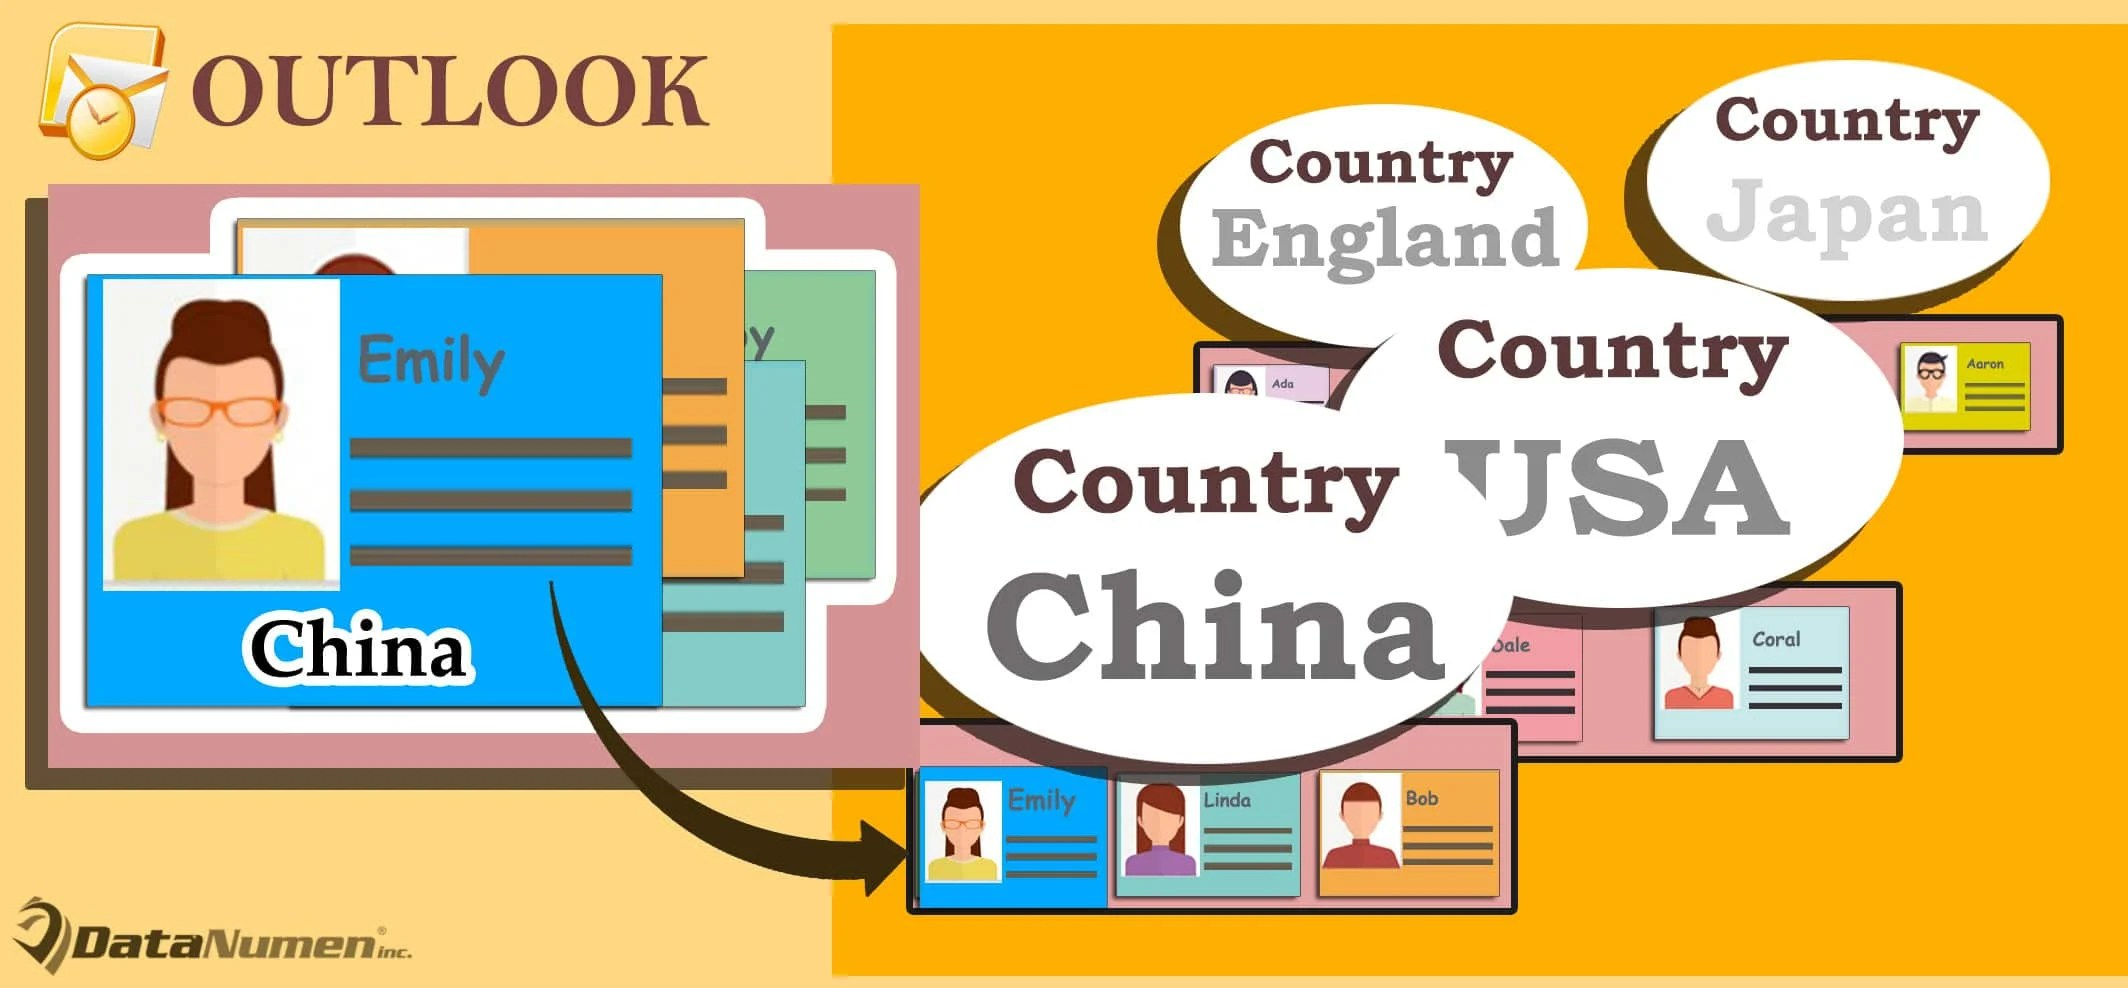 Quickly Group All Outlook Contacts by Country in List View